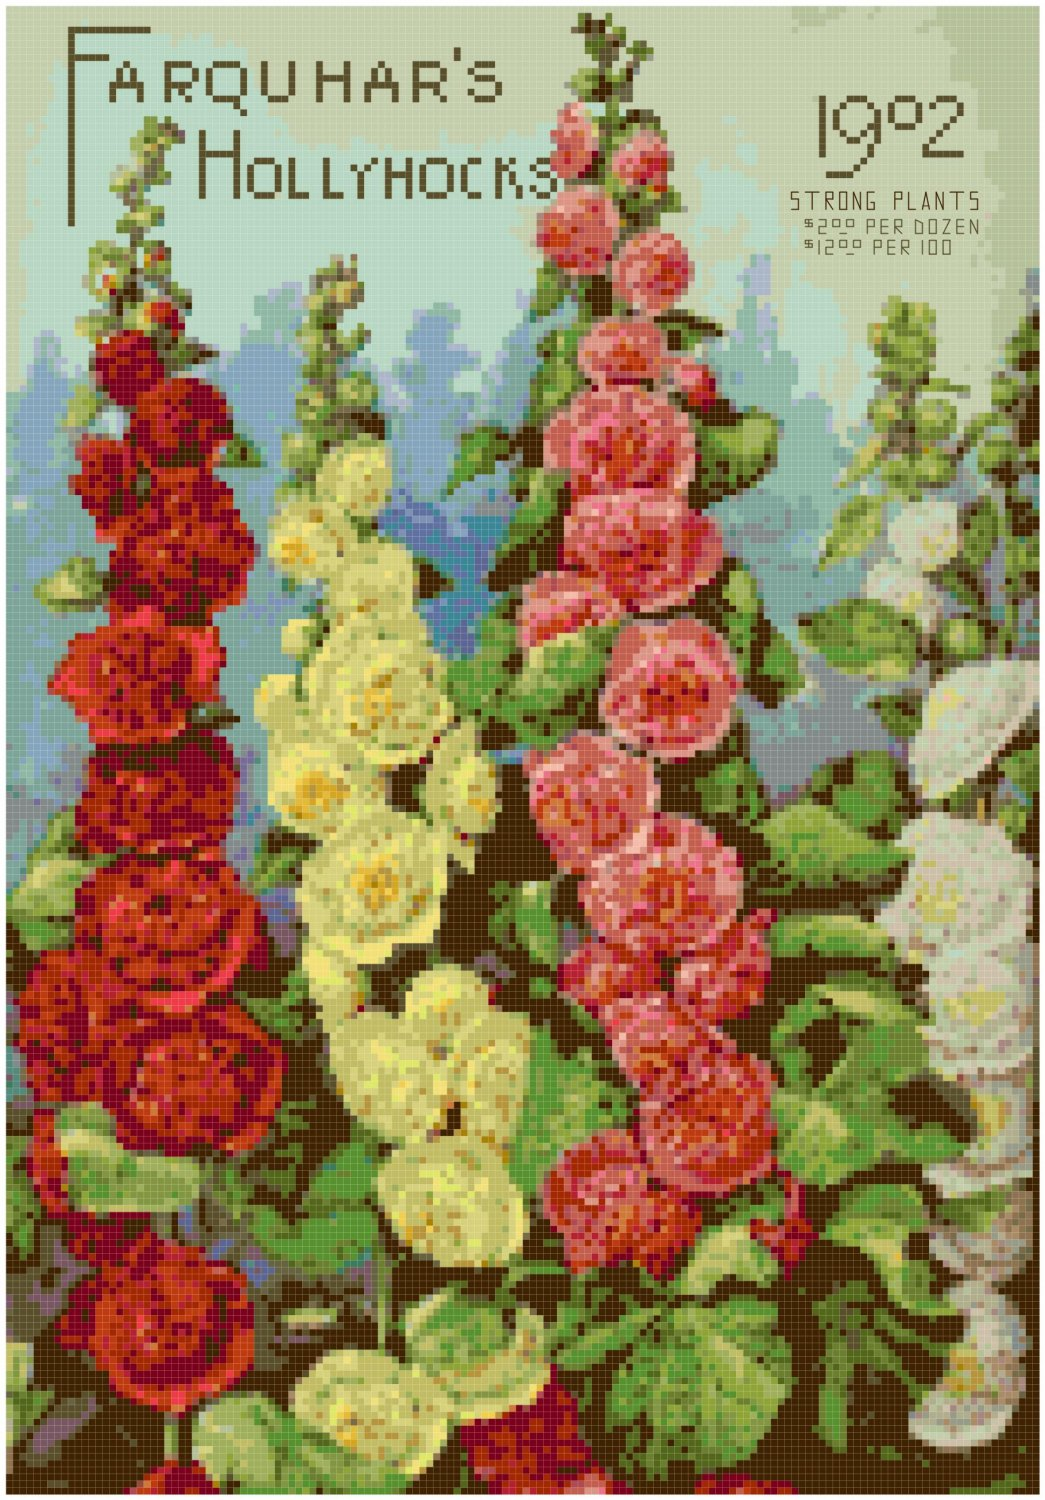 Antique Seed Catalog 1902 Magazine Cover Cross Stitch Pattern Chart Graph